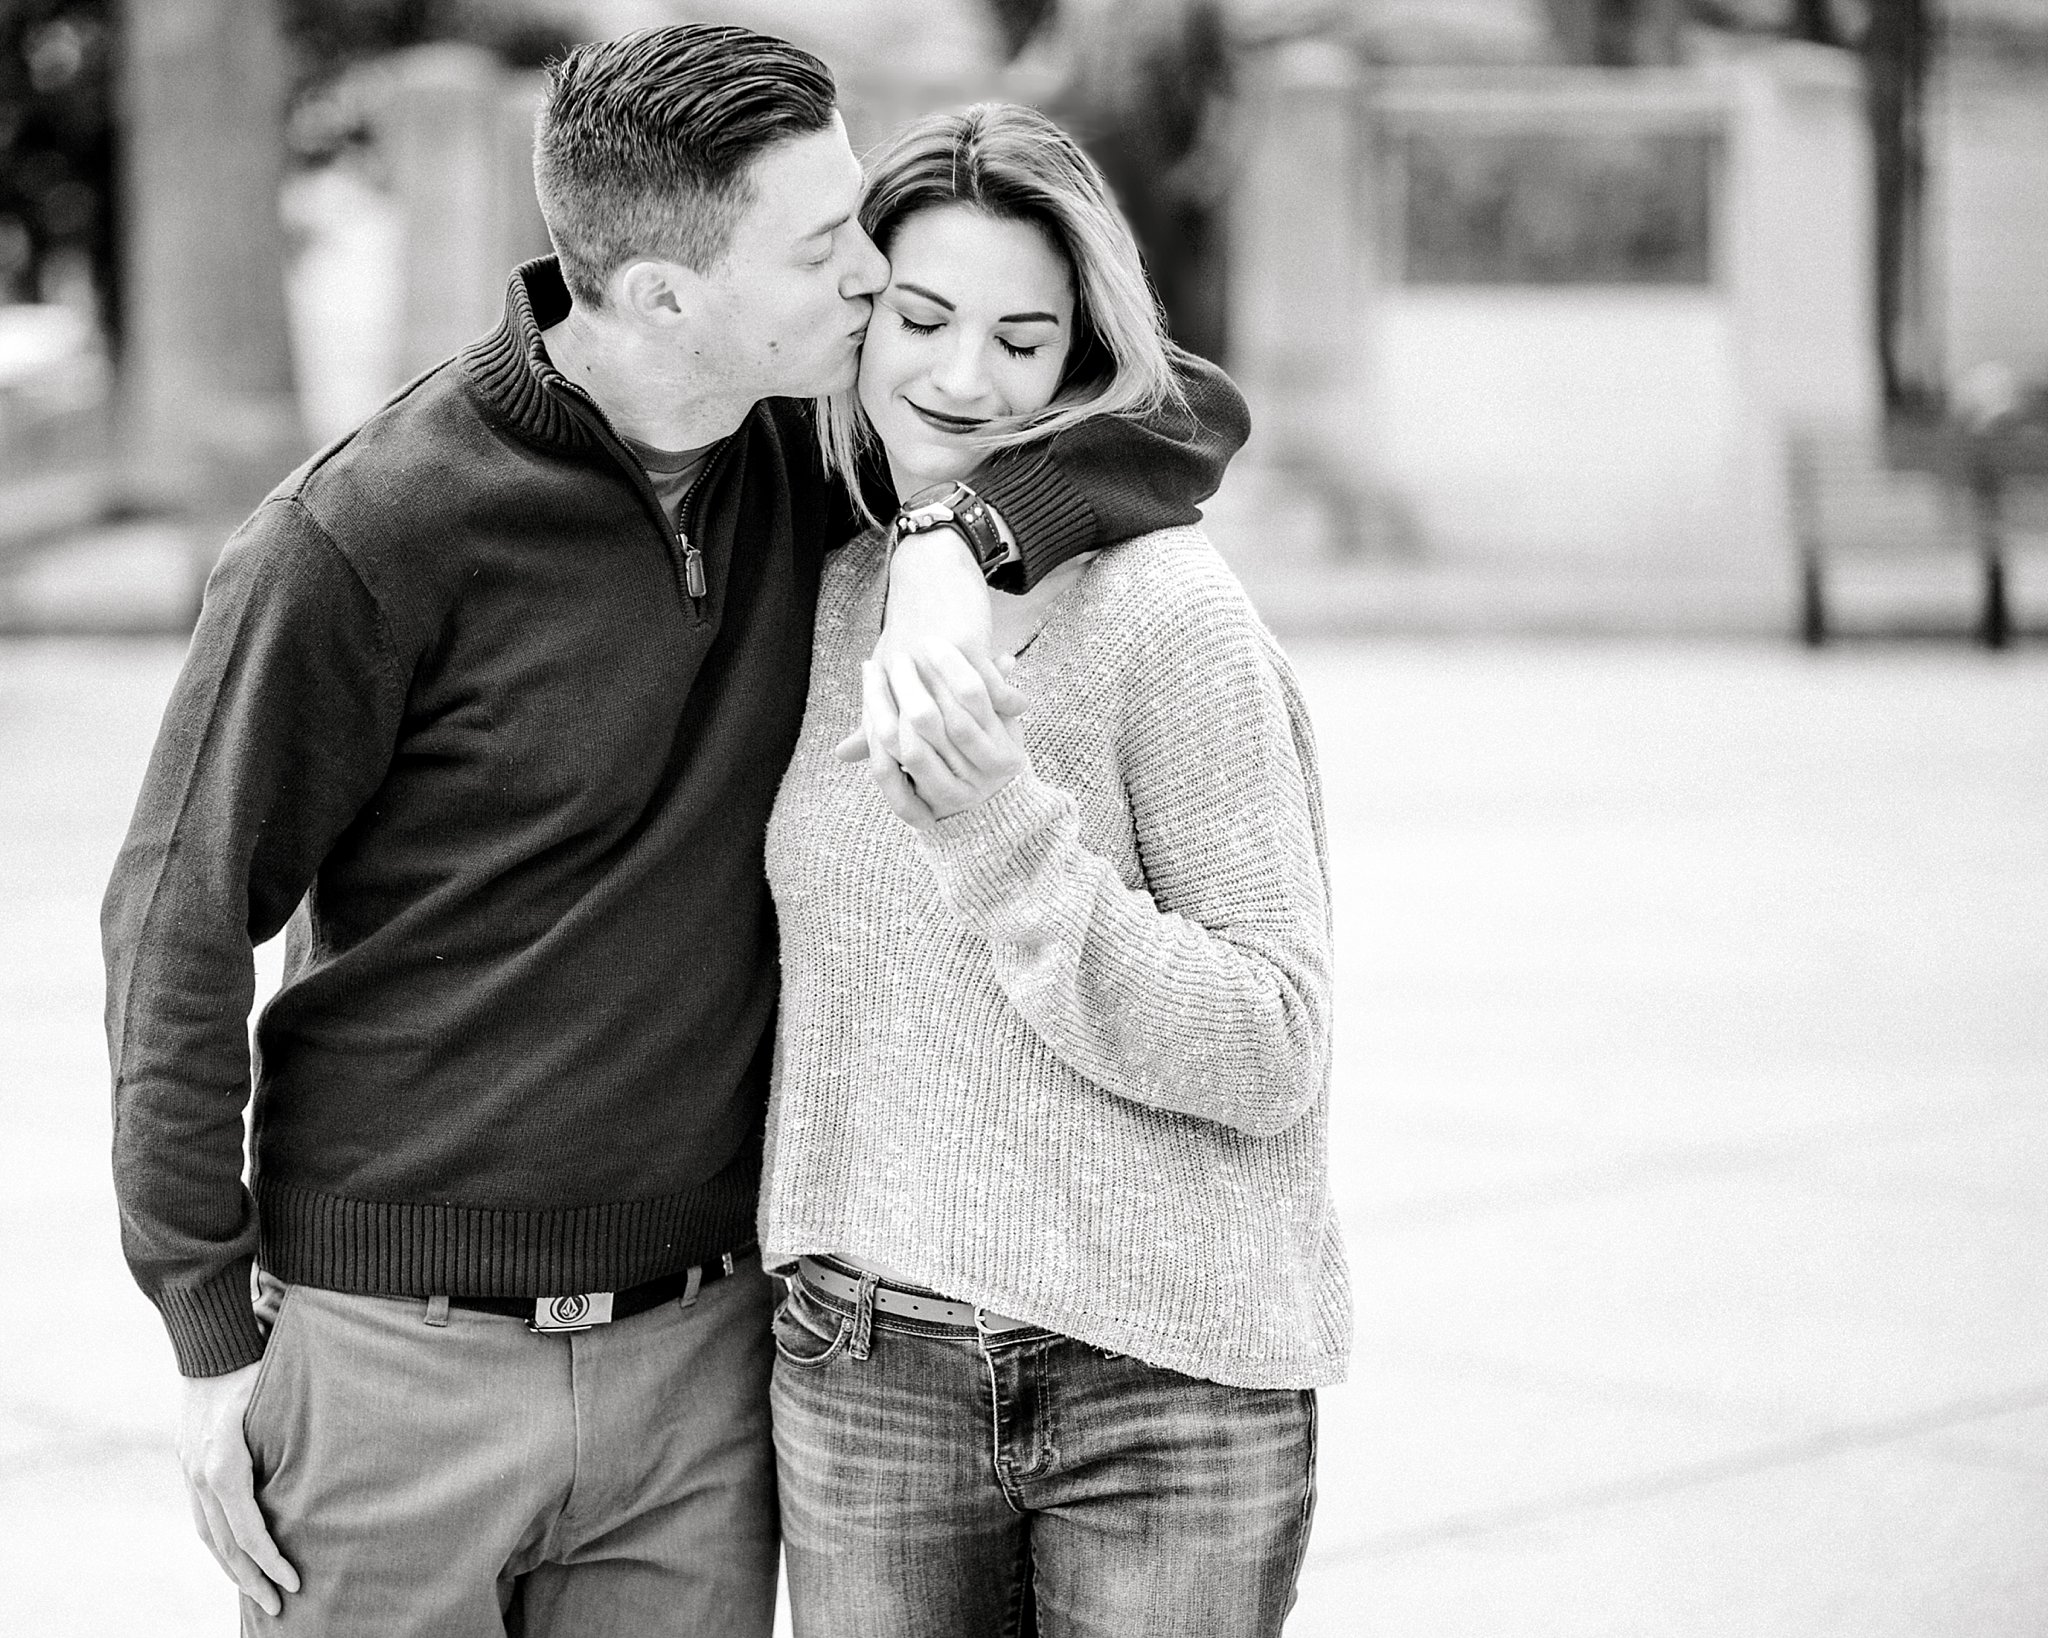 Downtown-Raleigh-Engagement-Photography-1